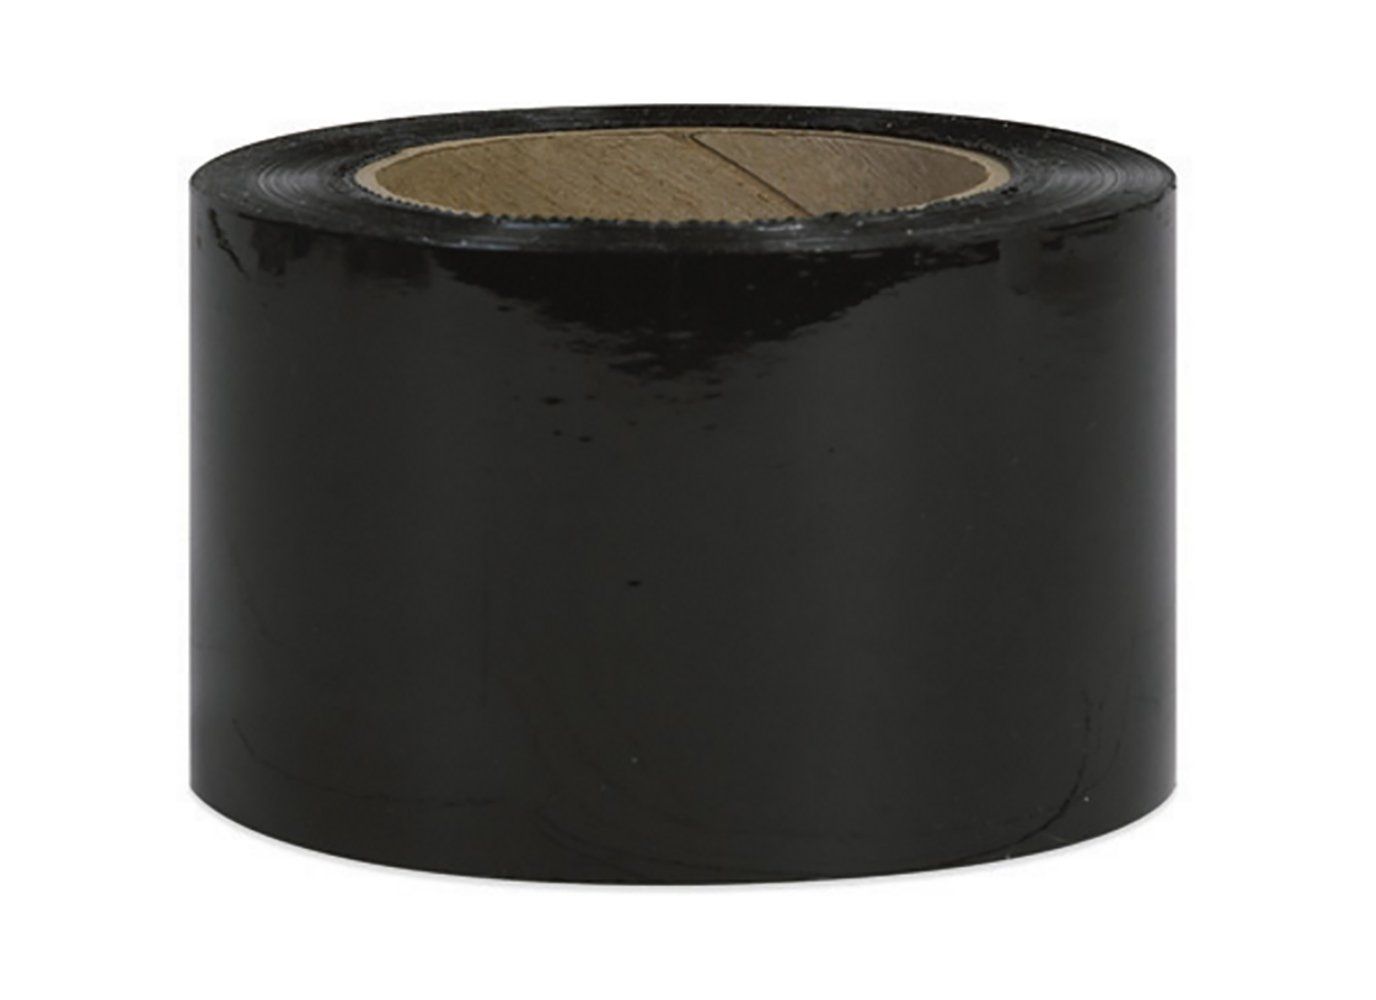 RetailSource 3'' x 80 Gauge x 1000' Black Bundling Stretch Film (2 Rolls)